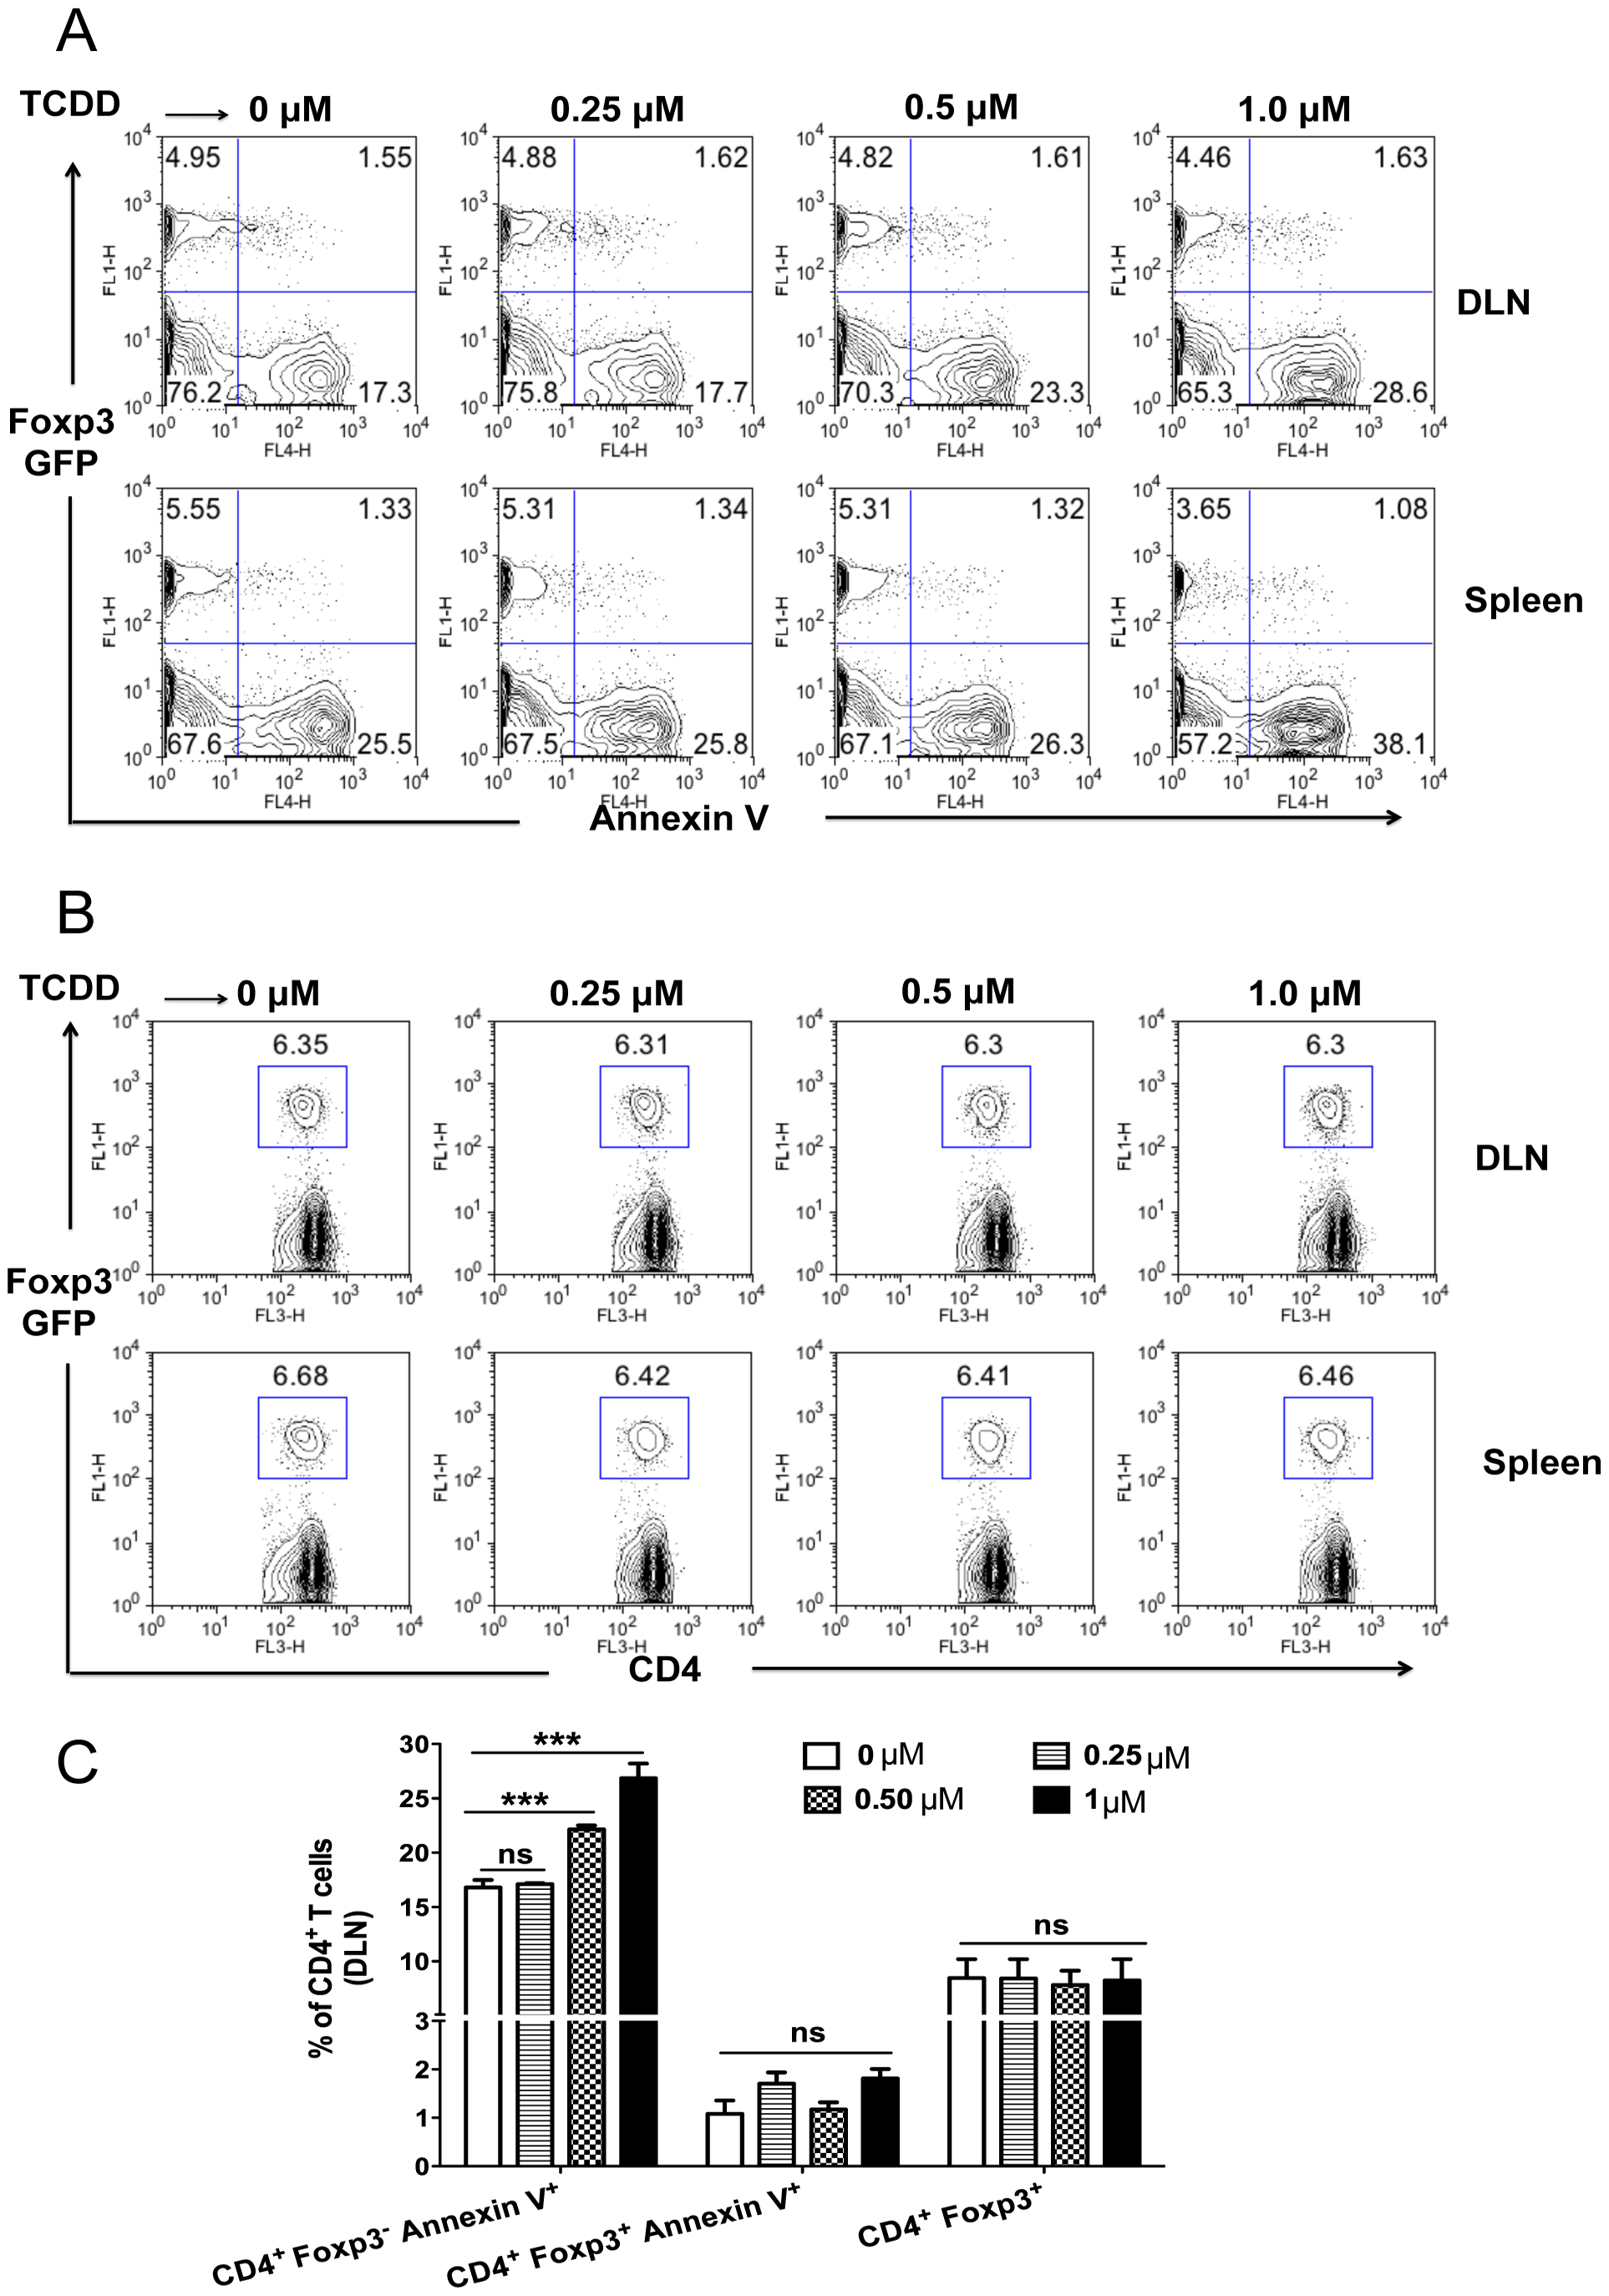 TCDD causes apoptosis of Foxp3<sup>-</sup>CD4<sup>+</sup> T cells but not Tregs.